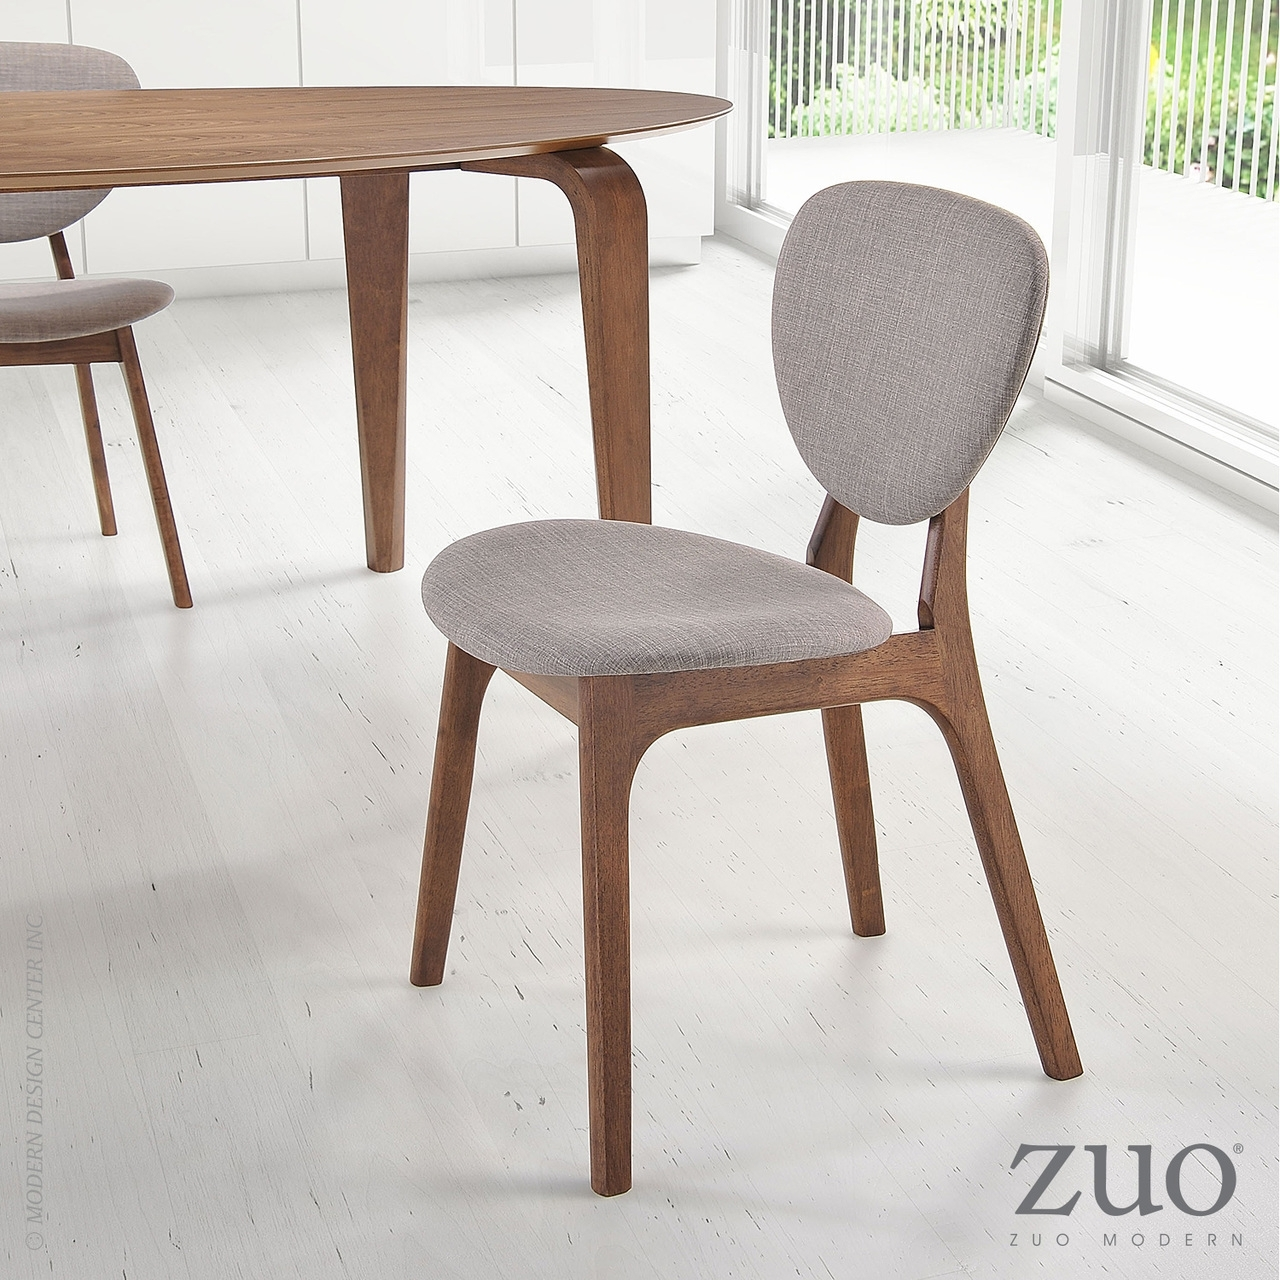 Zuo Mod Pertaining To Omni Side Chairs (View 12 of 20)